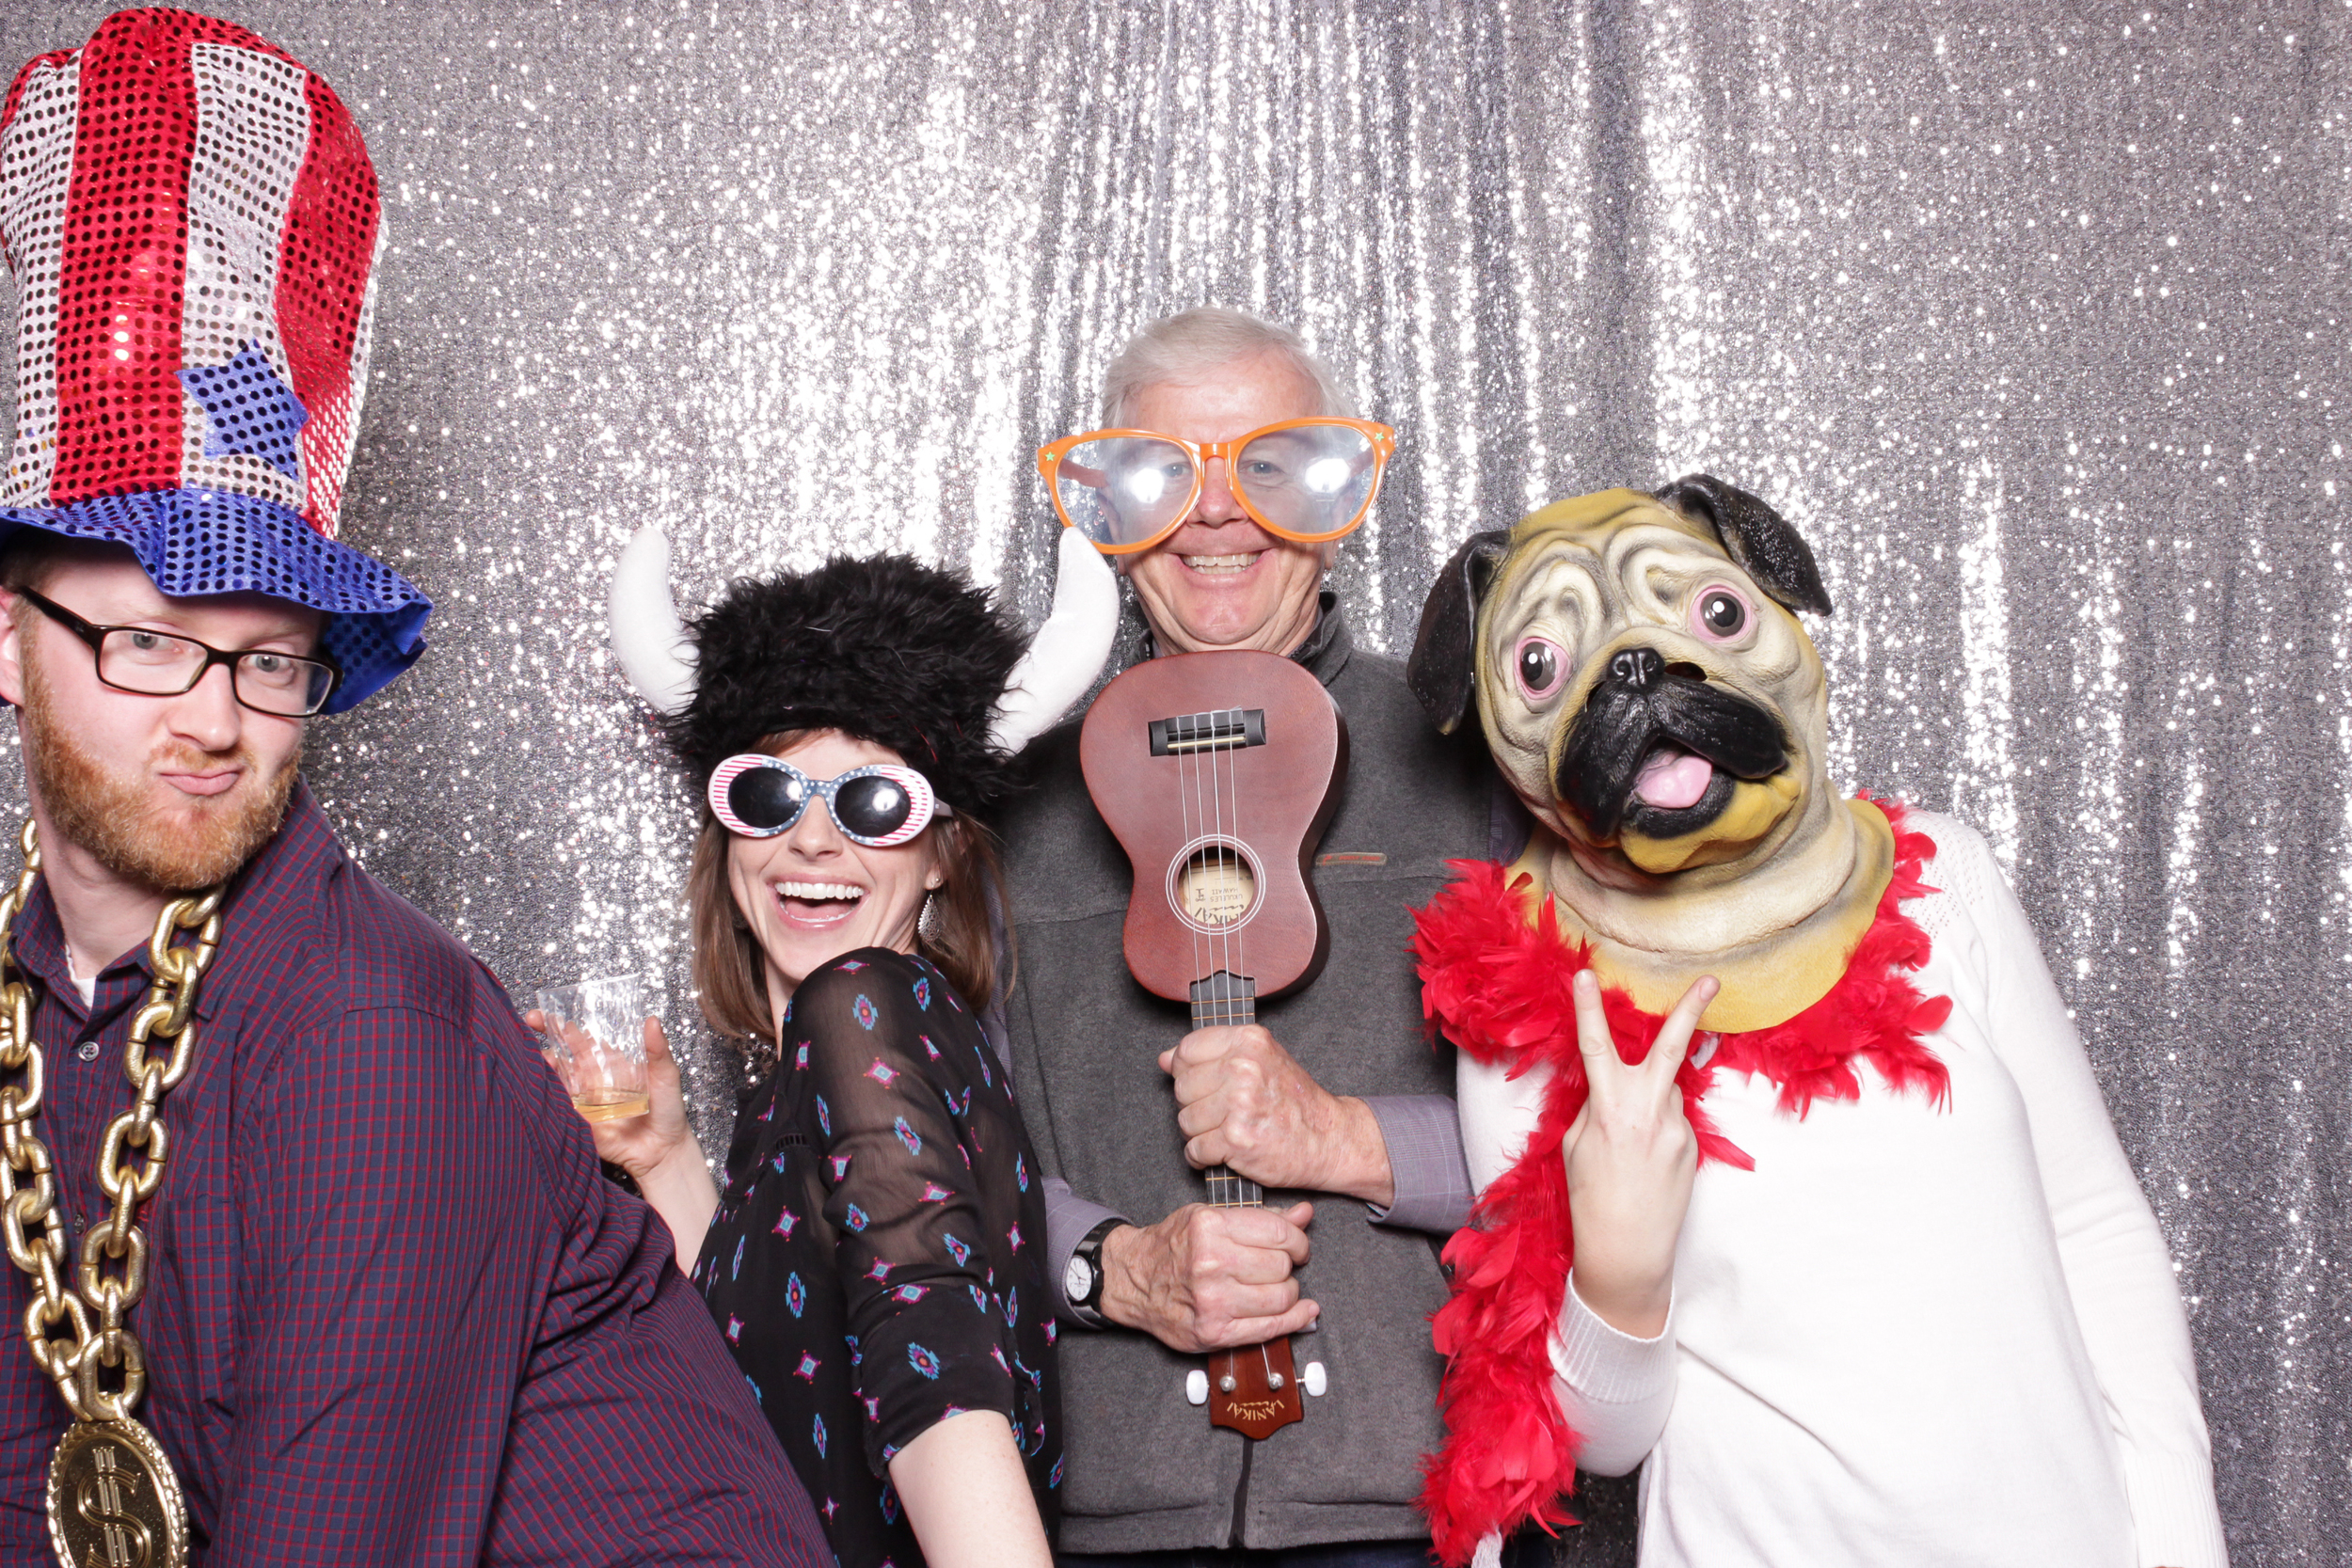 chico-silver-sequins-backdrop-photo-booth